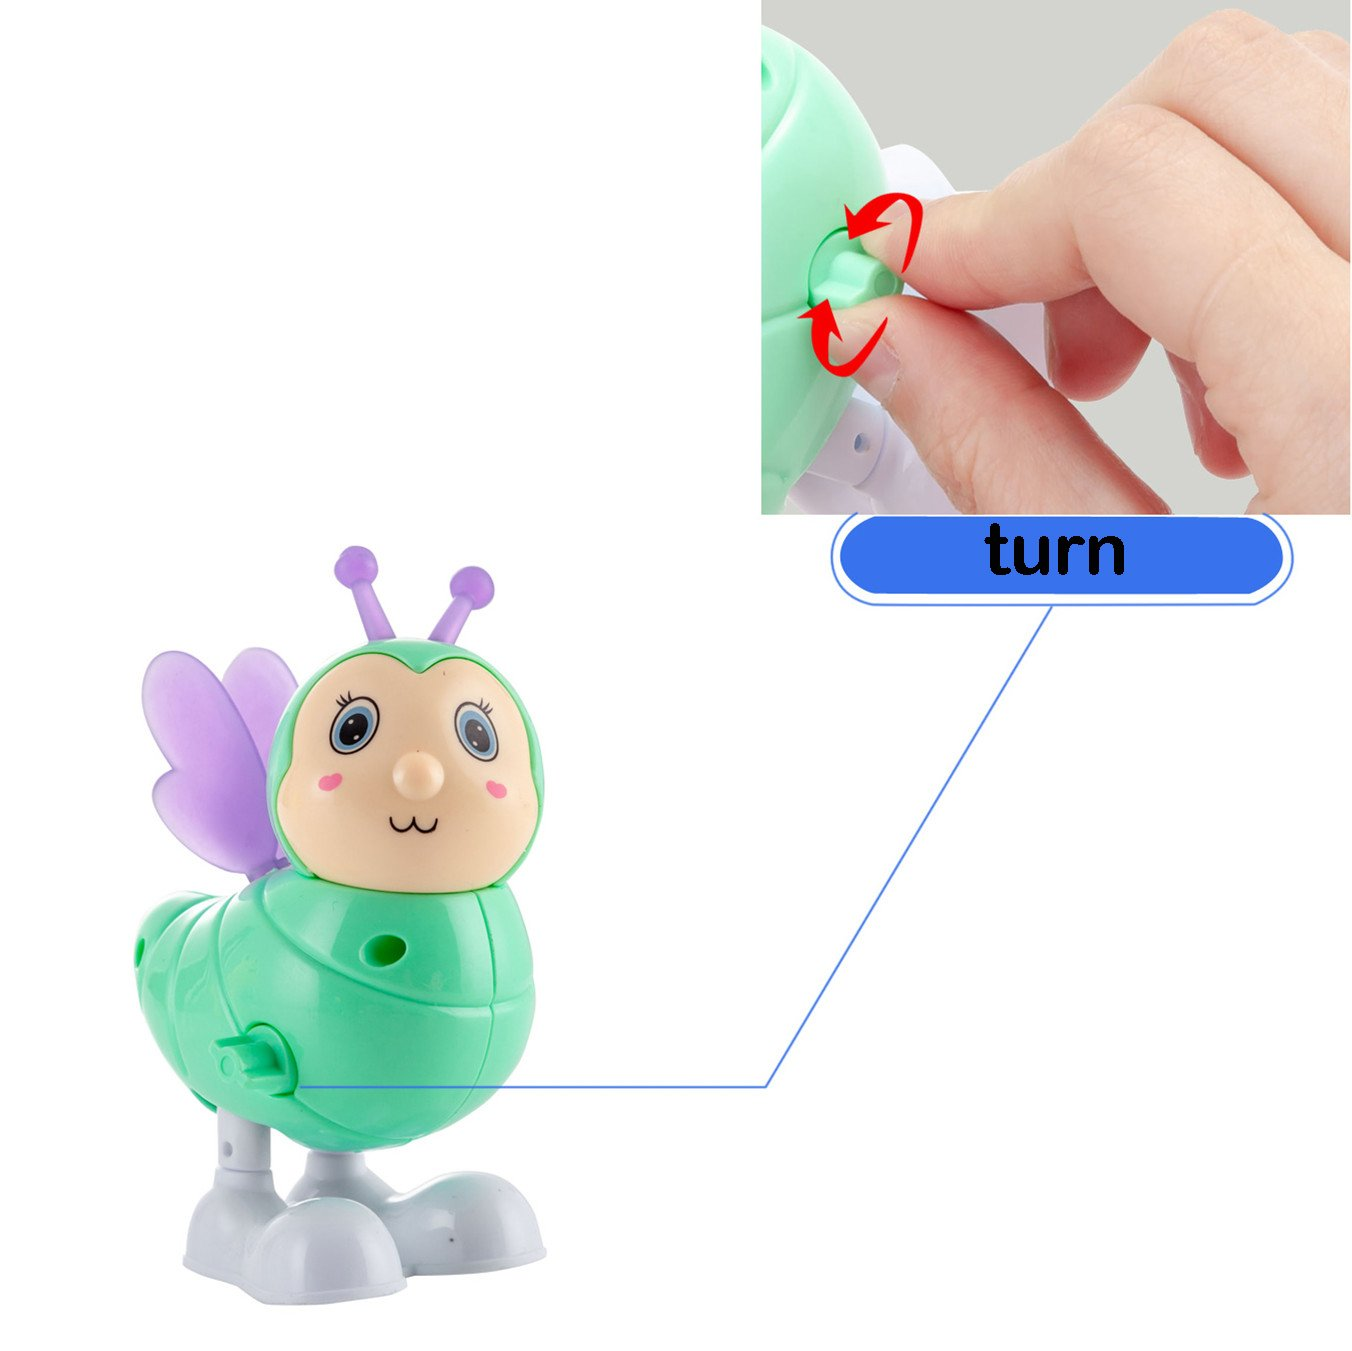 Clockwork Toy Cartoon Animal Educational Toys for Kids Boys Girls Toddlers Birthday Party Bags 6Pcs Wind Up Toys Gifts Novelty Prizes Goody Bags Party Favors Shallylu